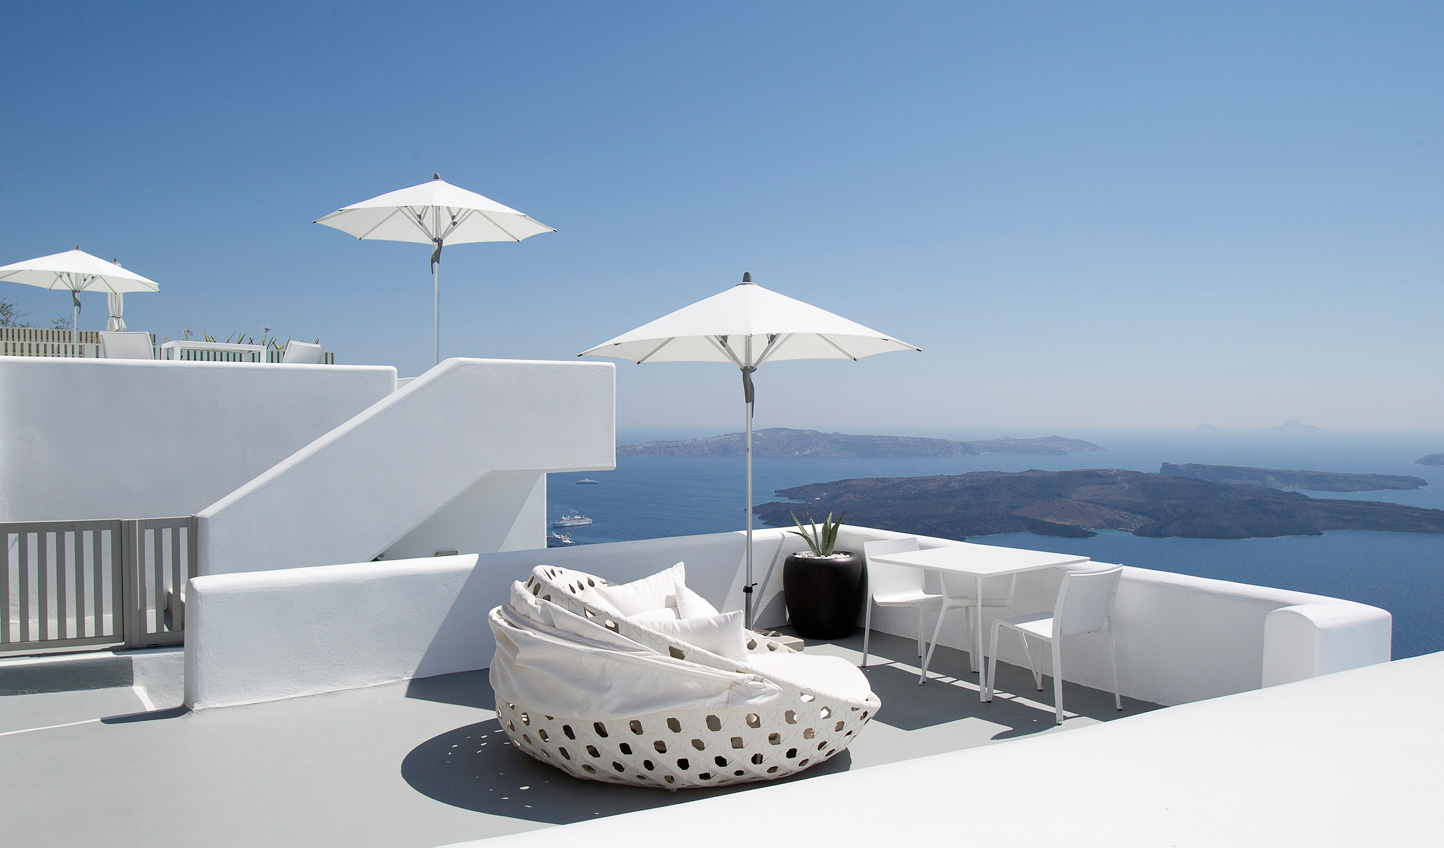 Look out over the endless hues of blue from your private terrace